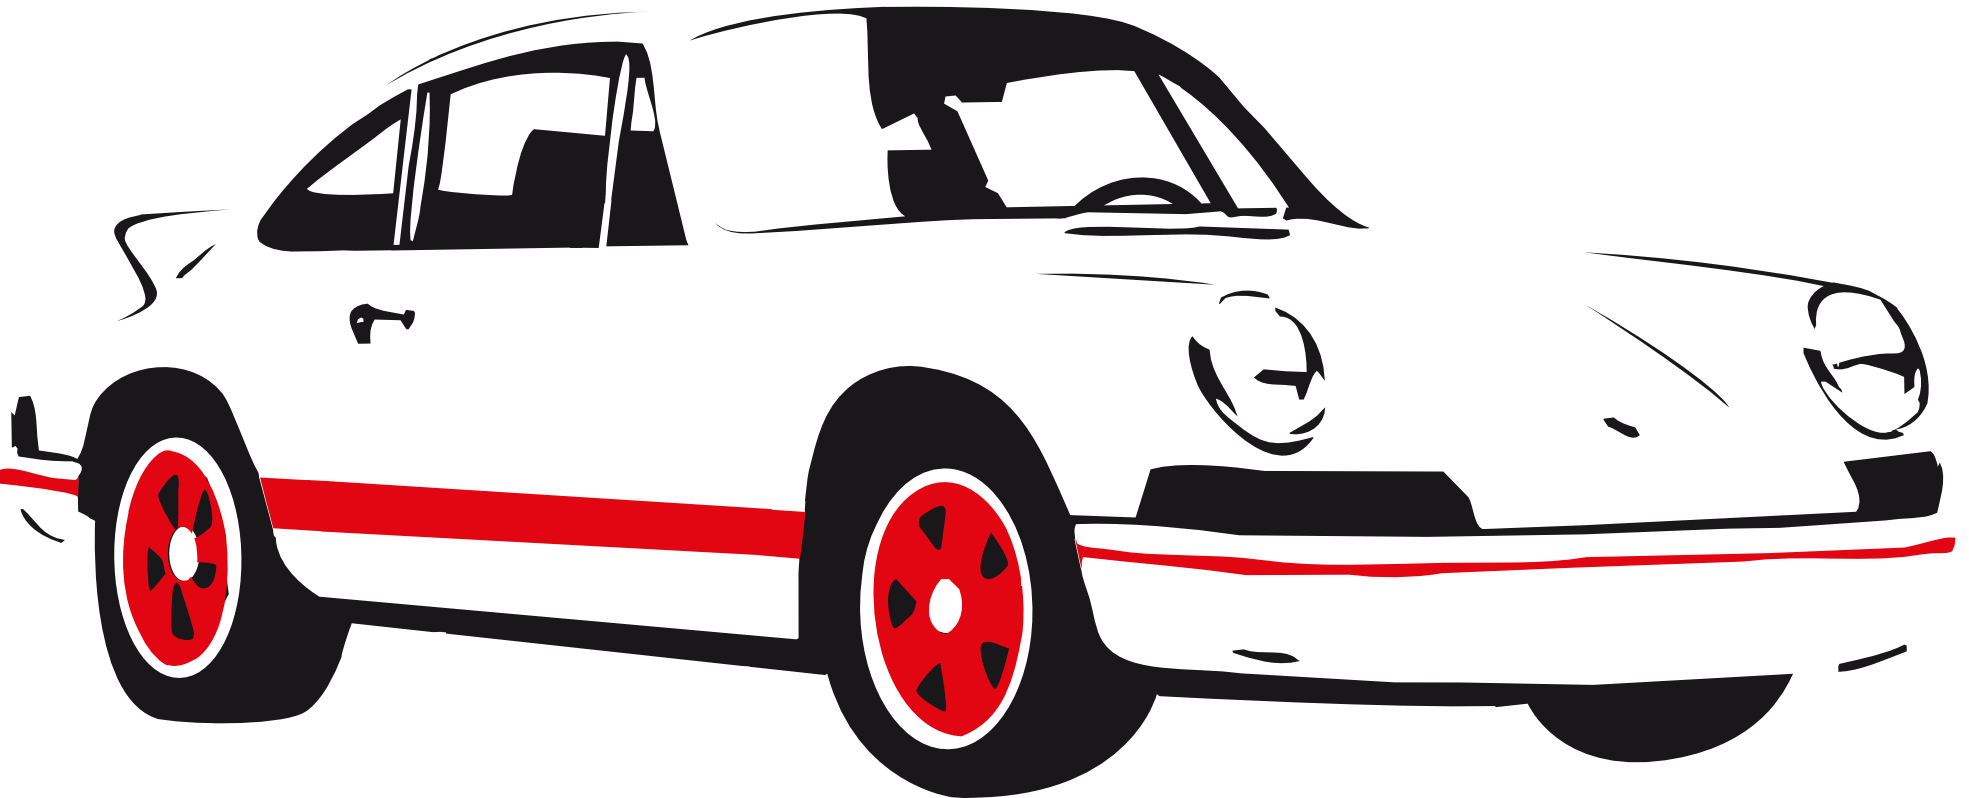 1969x798 Car black and white car clipart black and white clipartfox